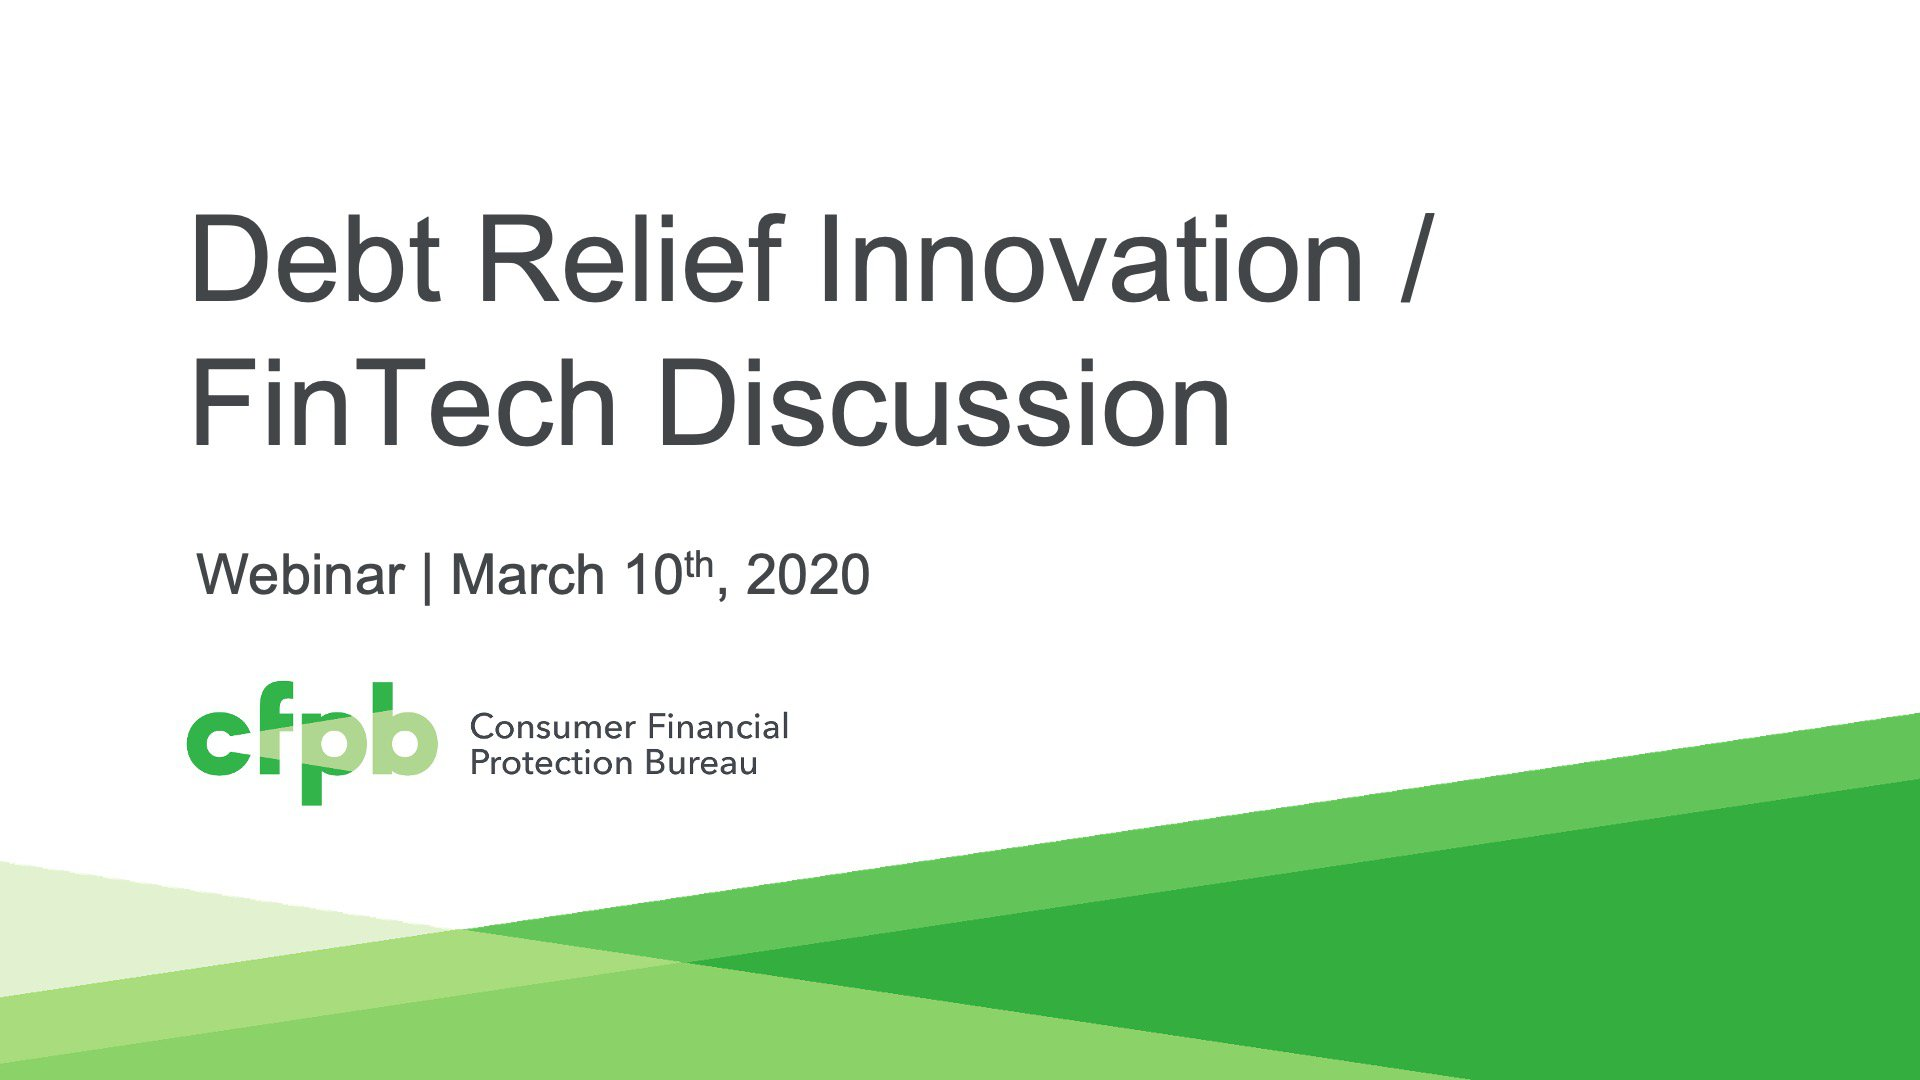 Session 3: Debt Relief Innovation/FinTech Discussion